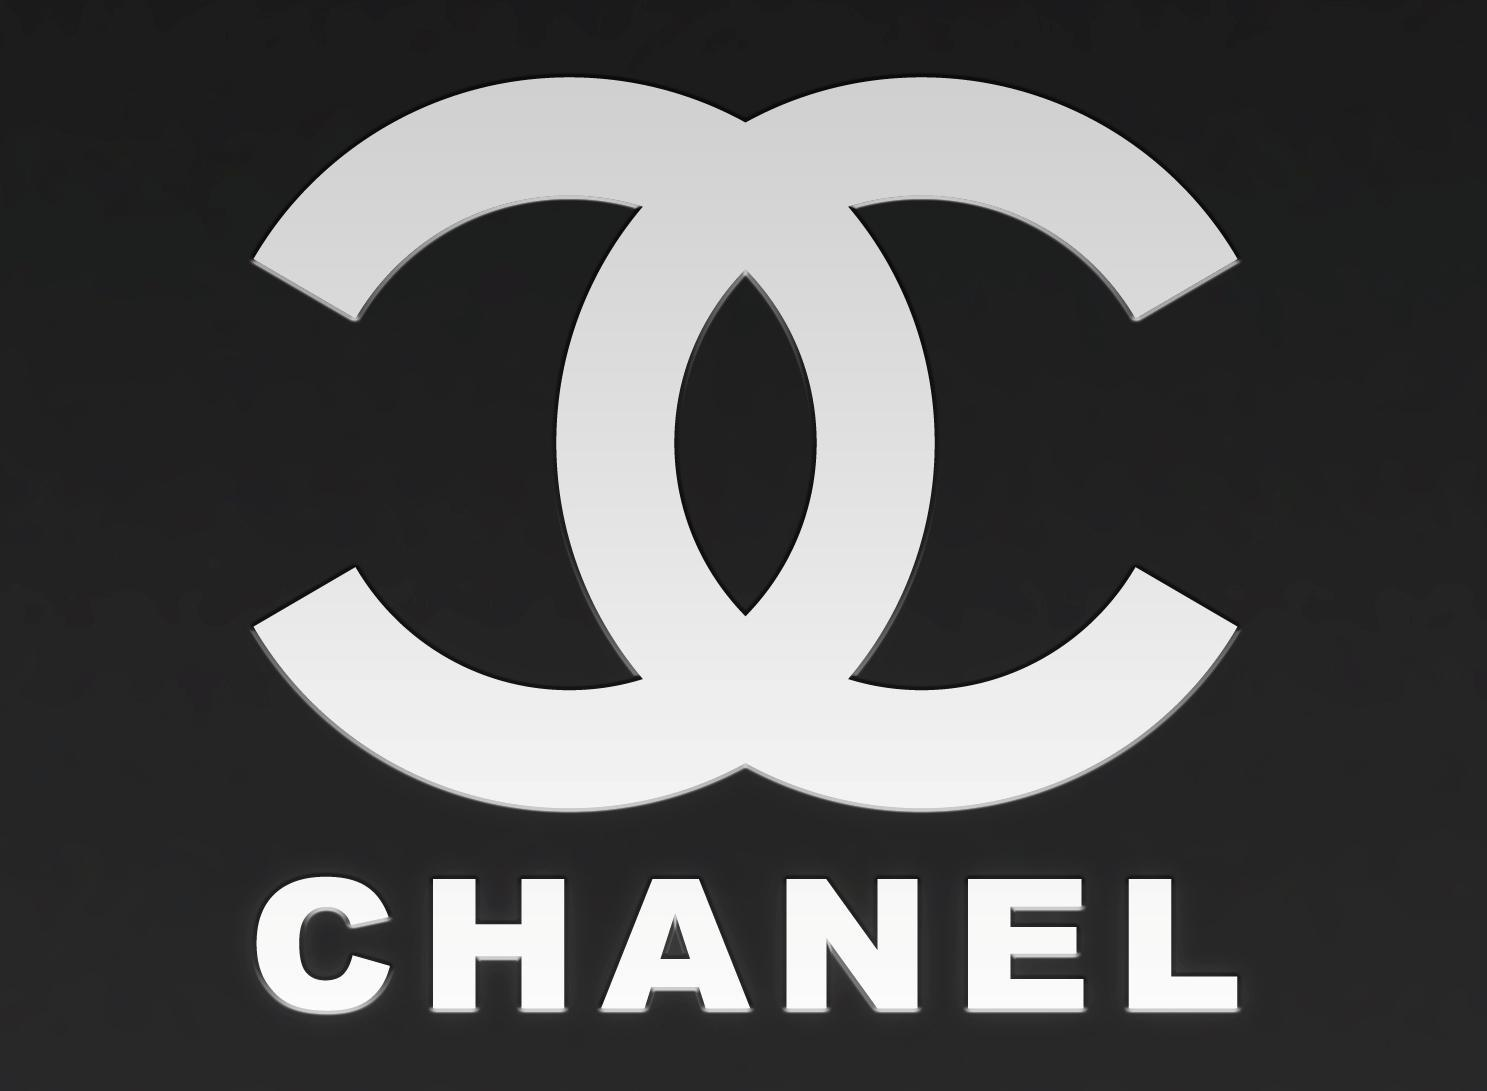 Chanel - Famous Logos in the World